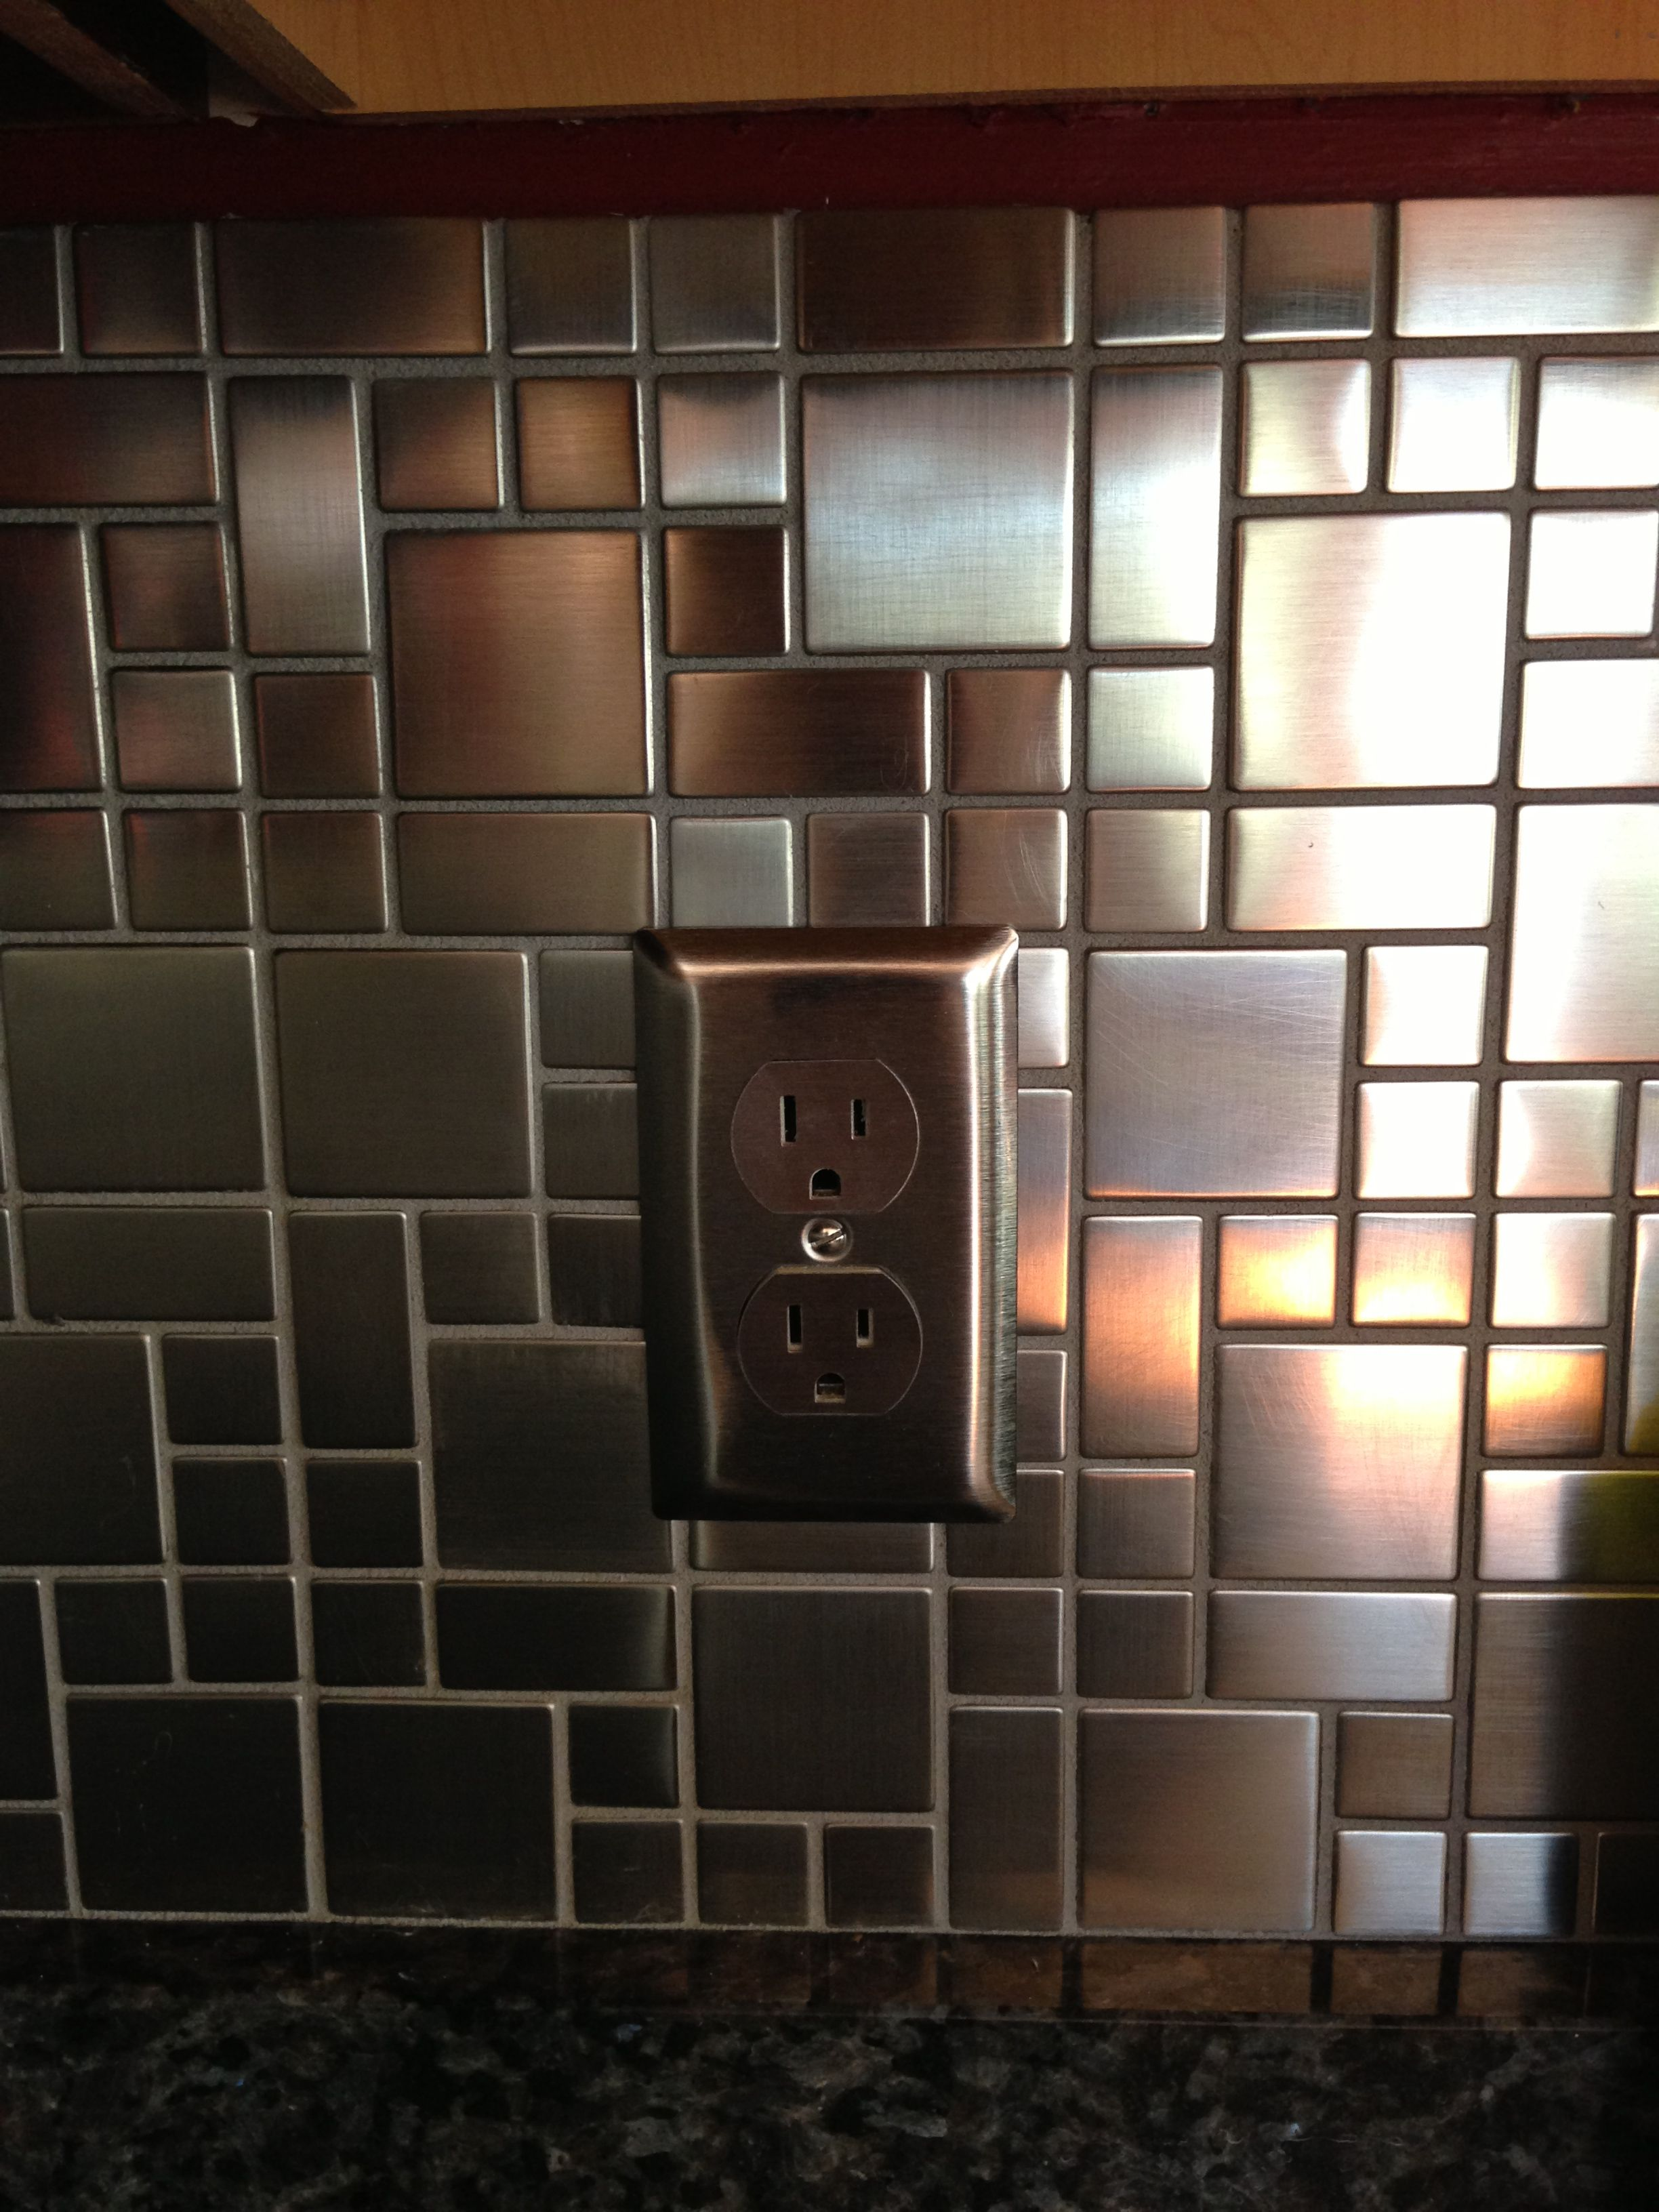 Brushed Stainless Steel Backsplash Tiles And Matching Outlet